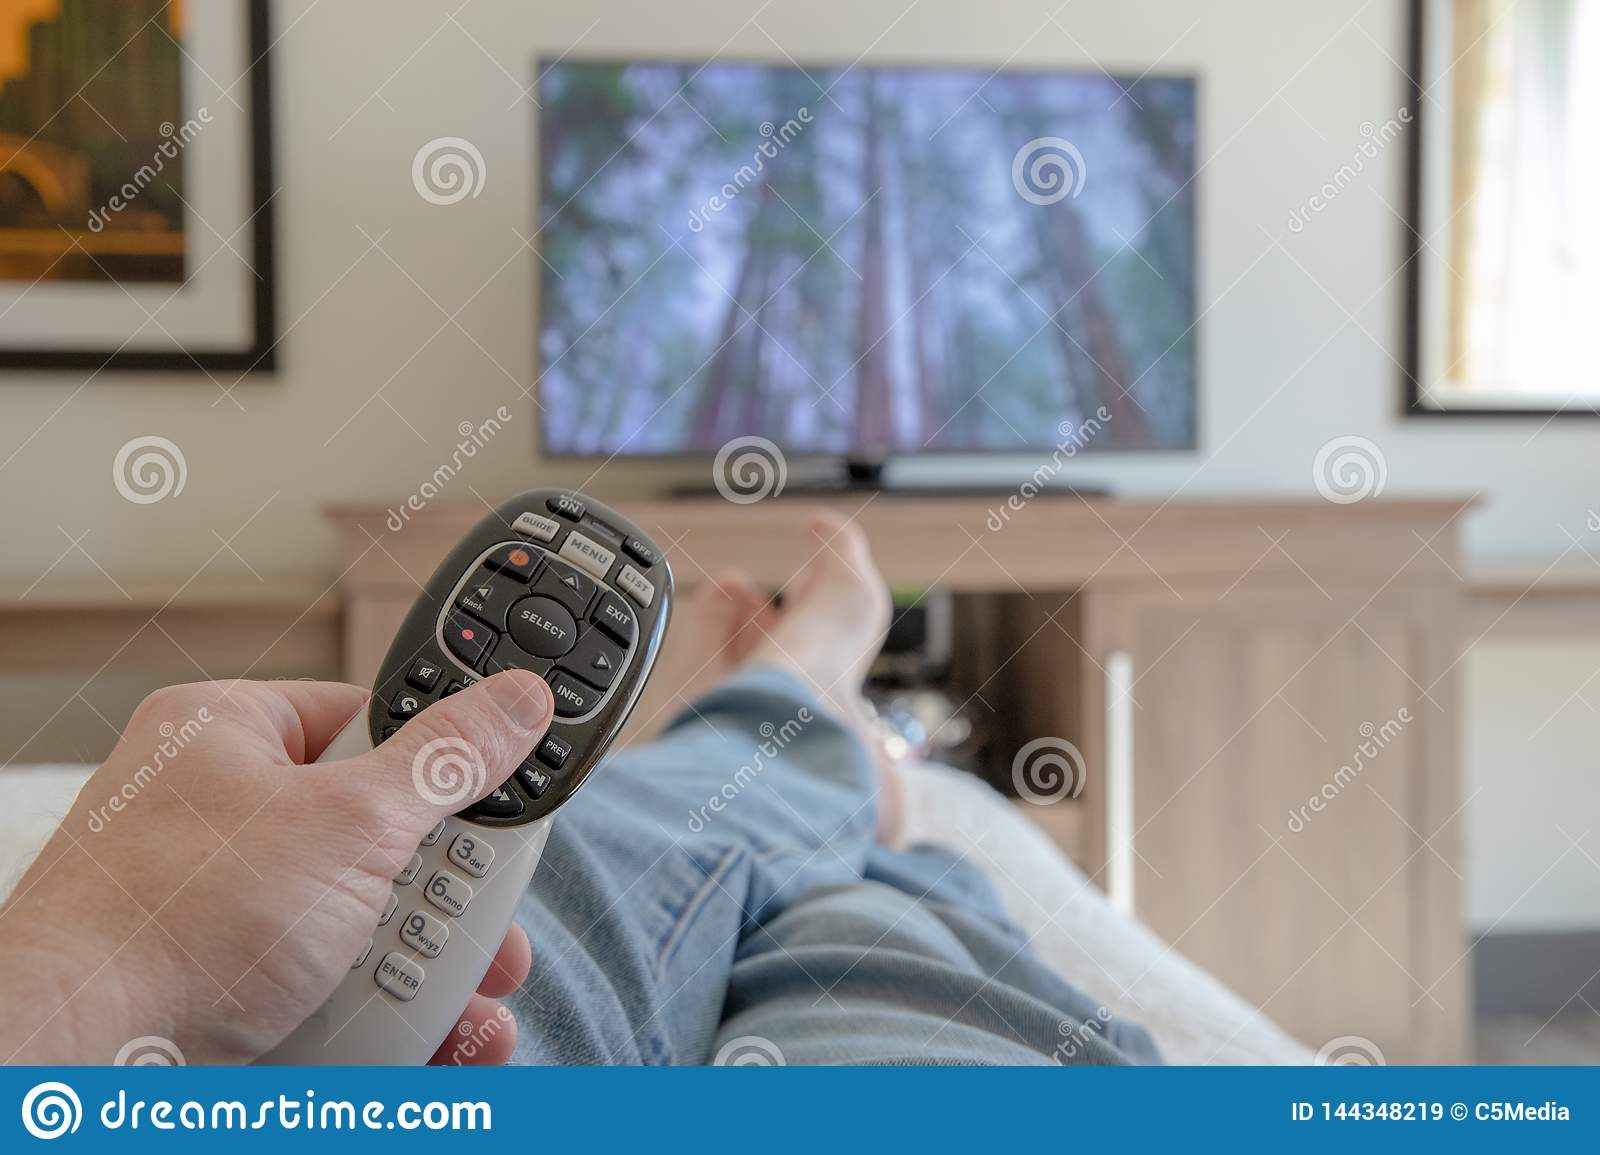 Hand Holding remote Control for TV while relaxing with feet propped up - Shallow depth of field